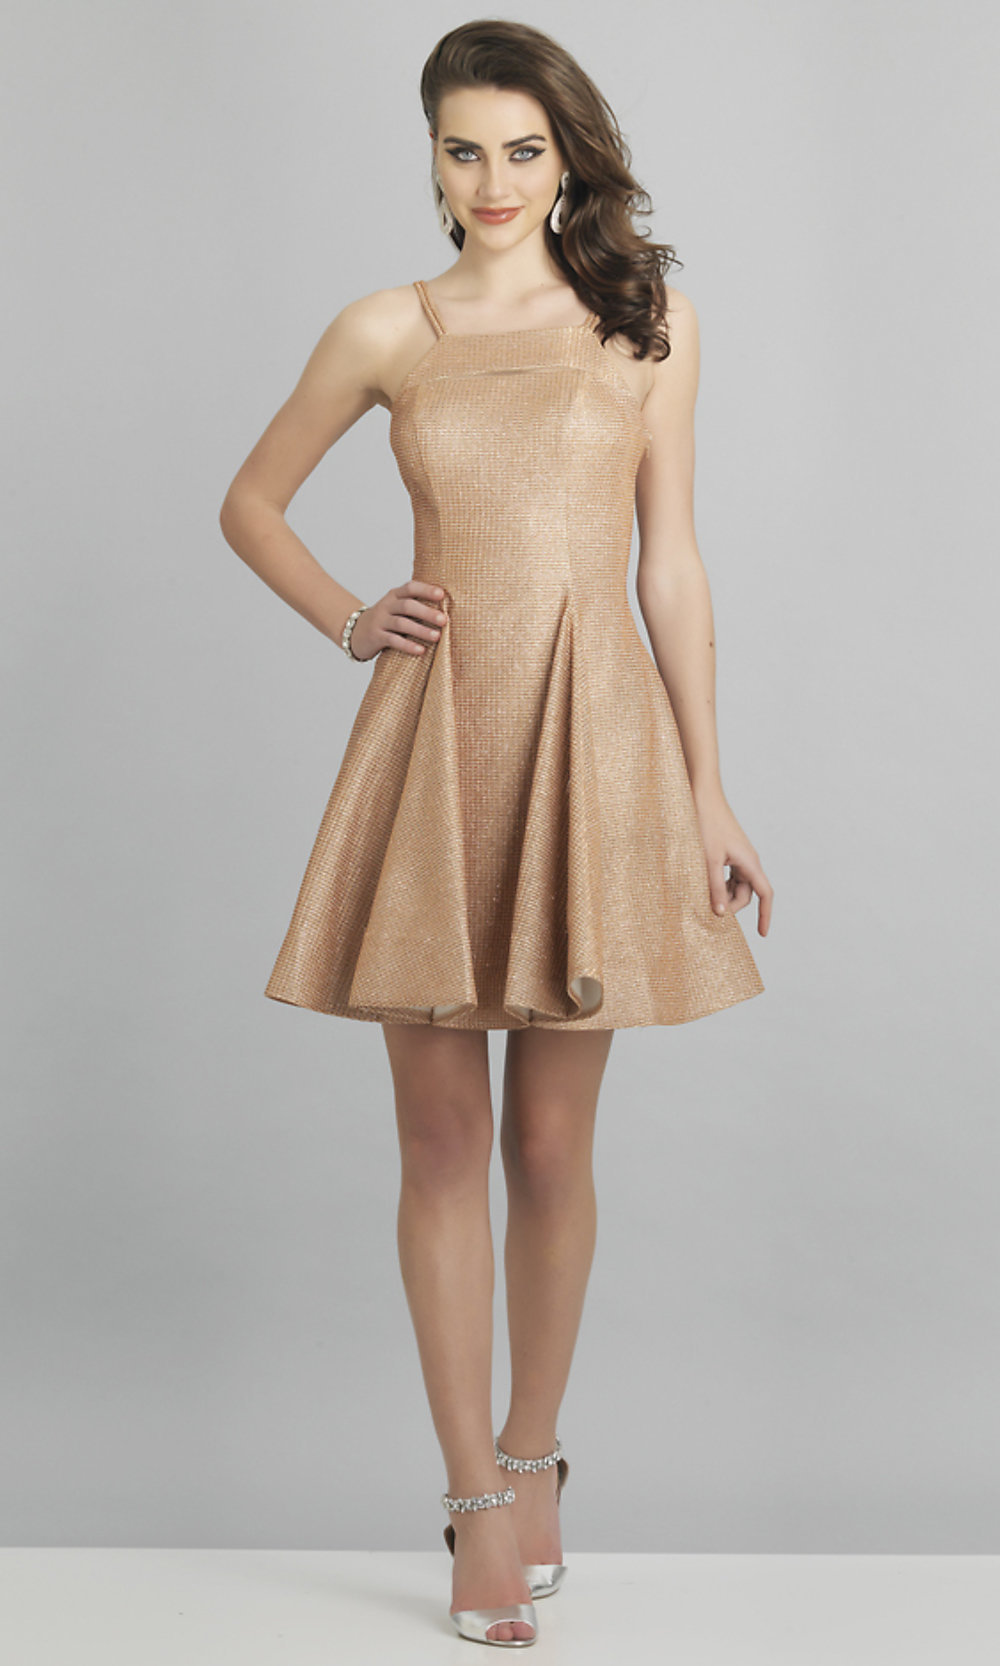 Short Fit And Flare Rose Gold Metallic Glitter Dress